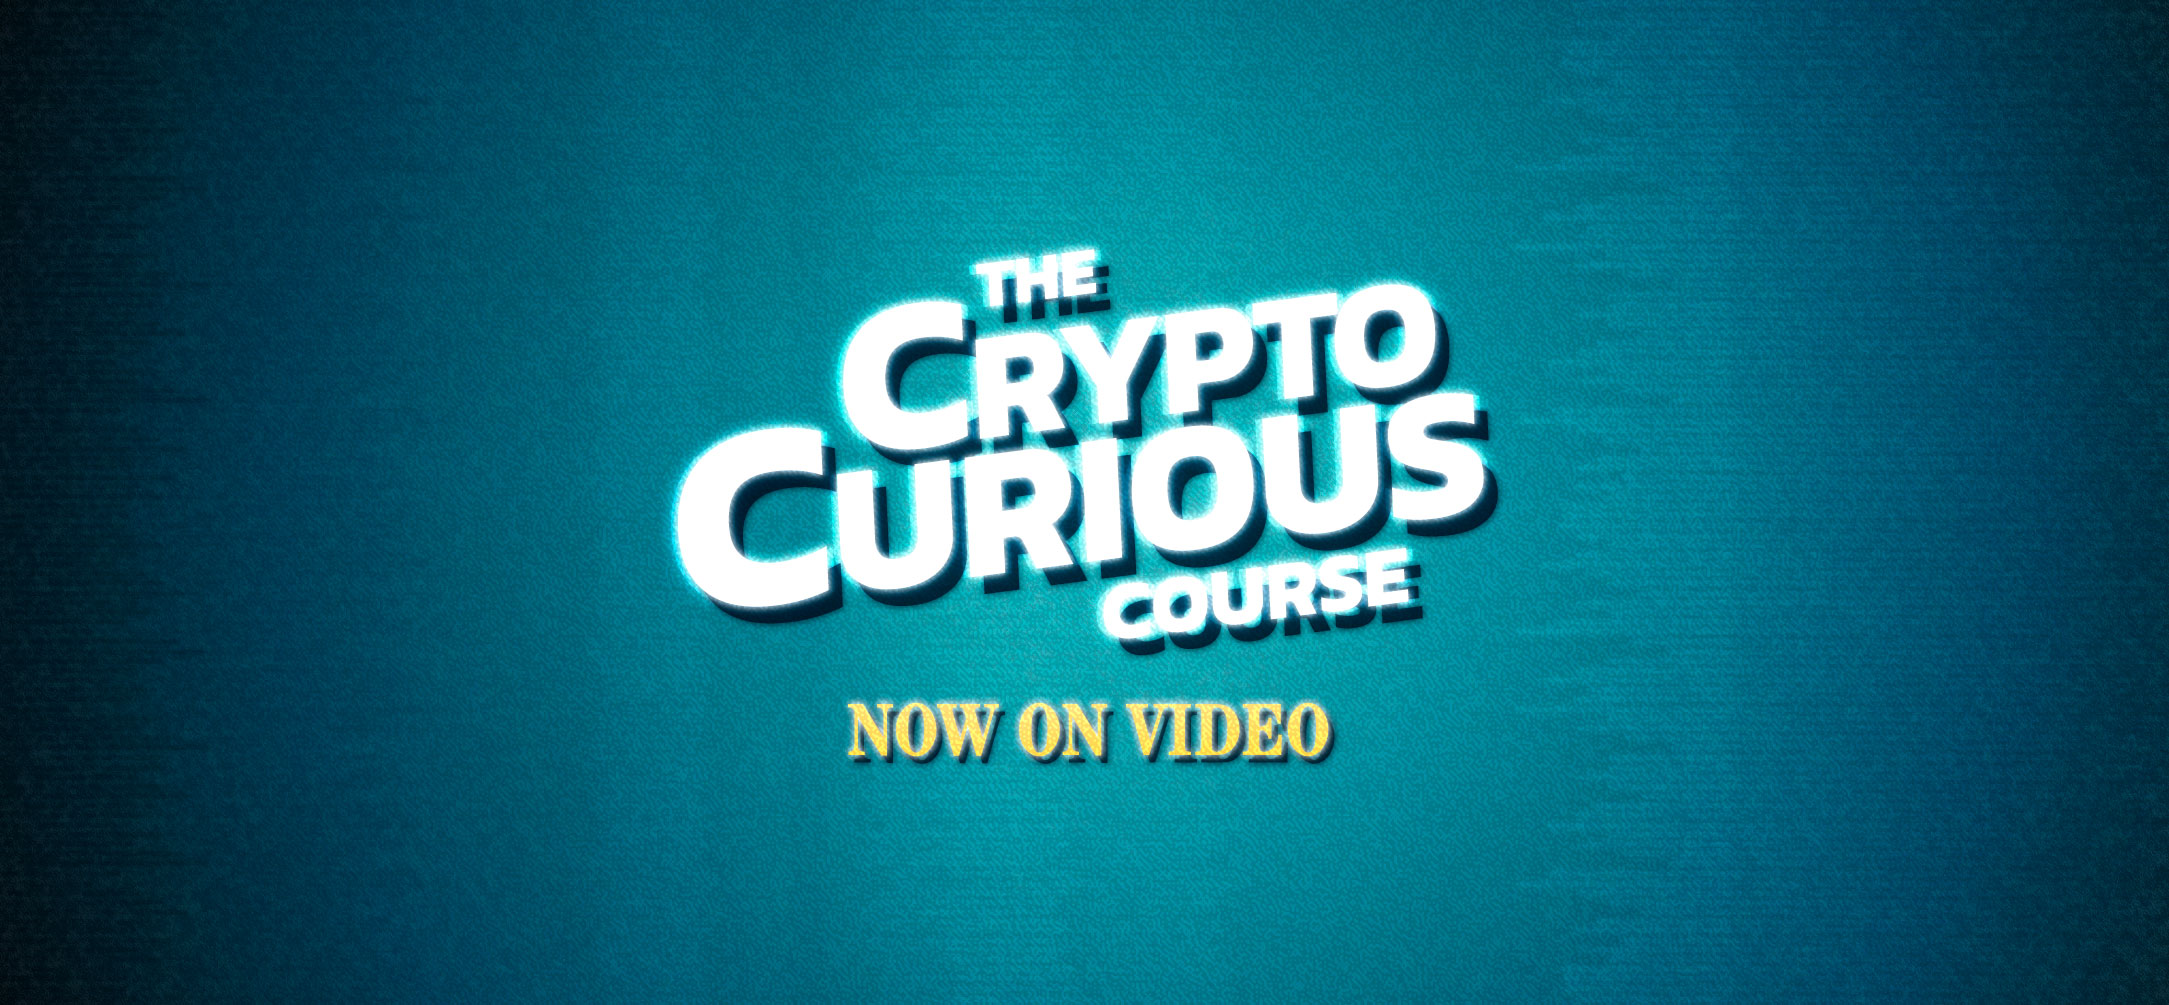 Crypto Curious Course